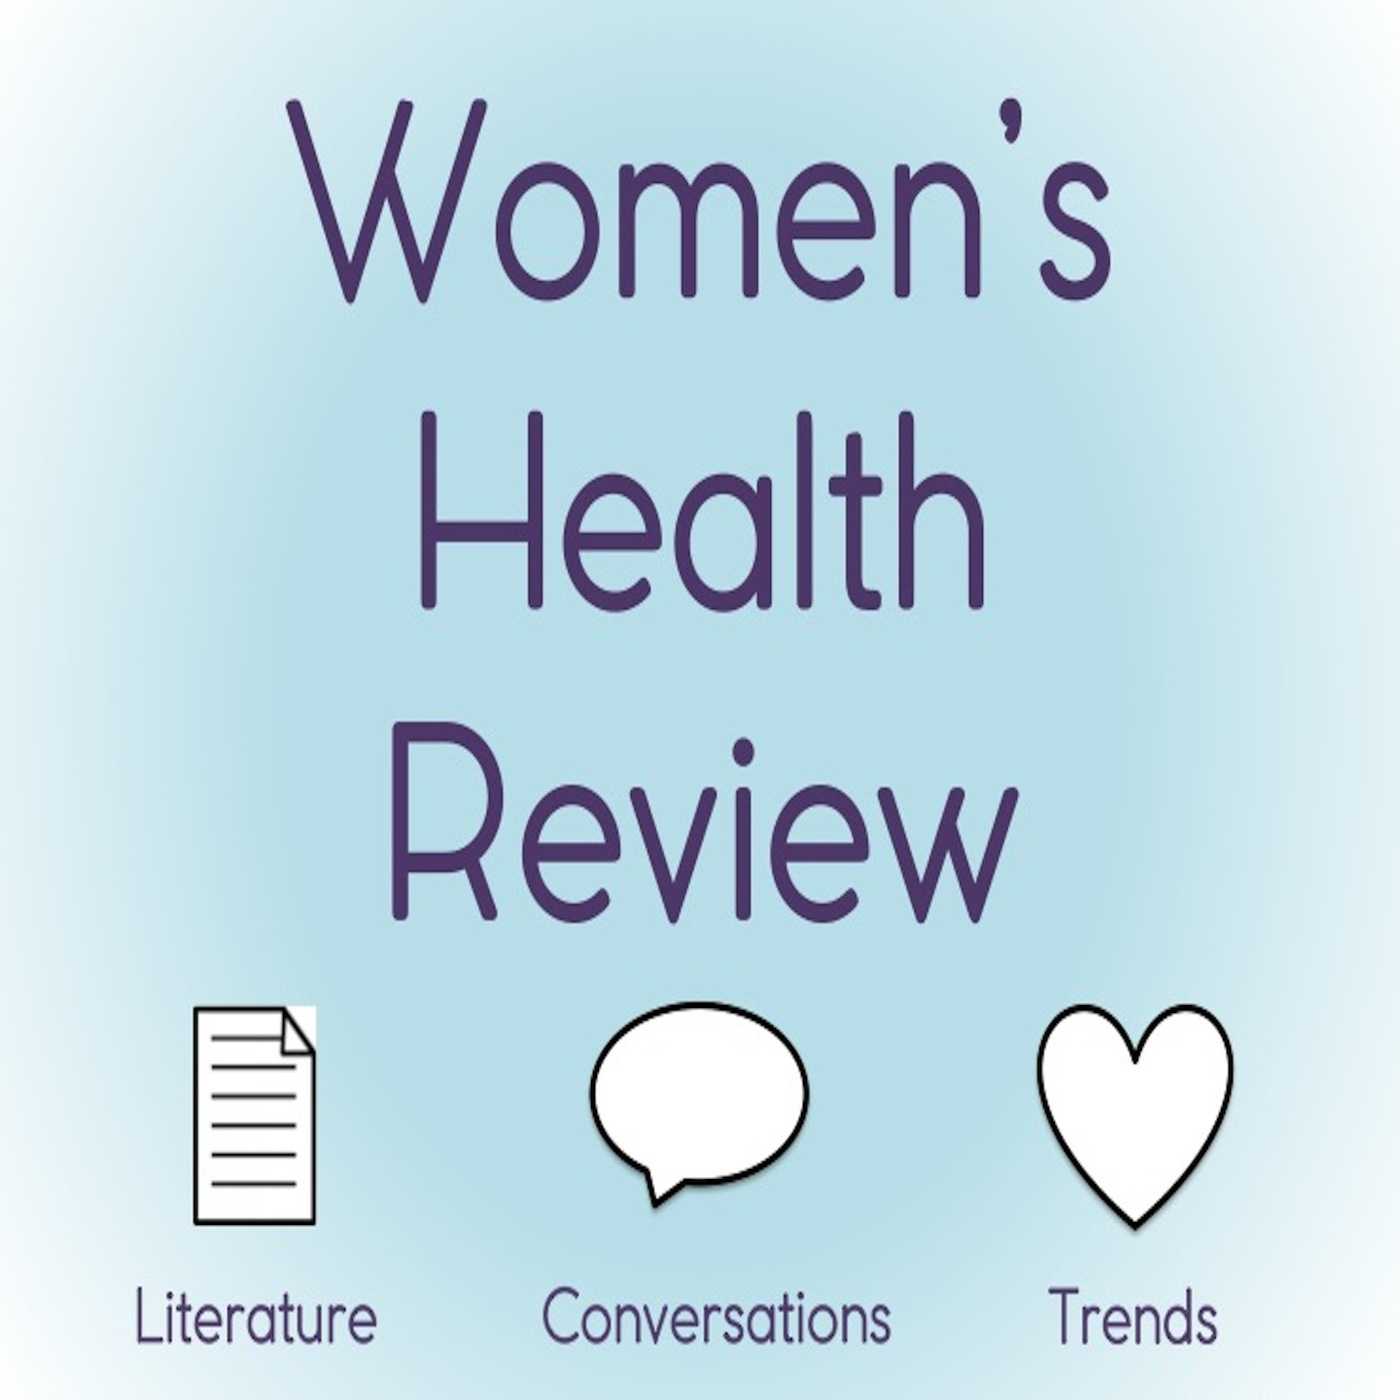 Women's Health Review - Elm Tree Medical